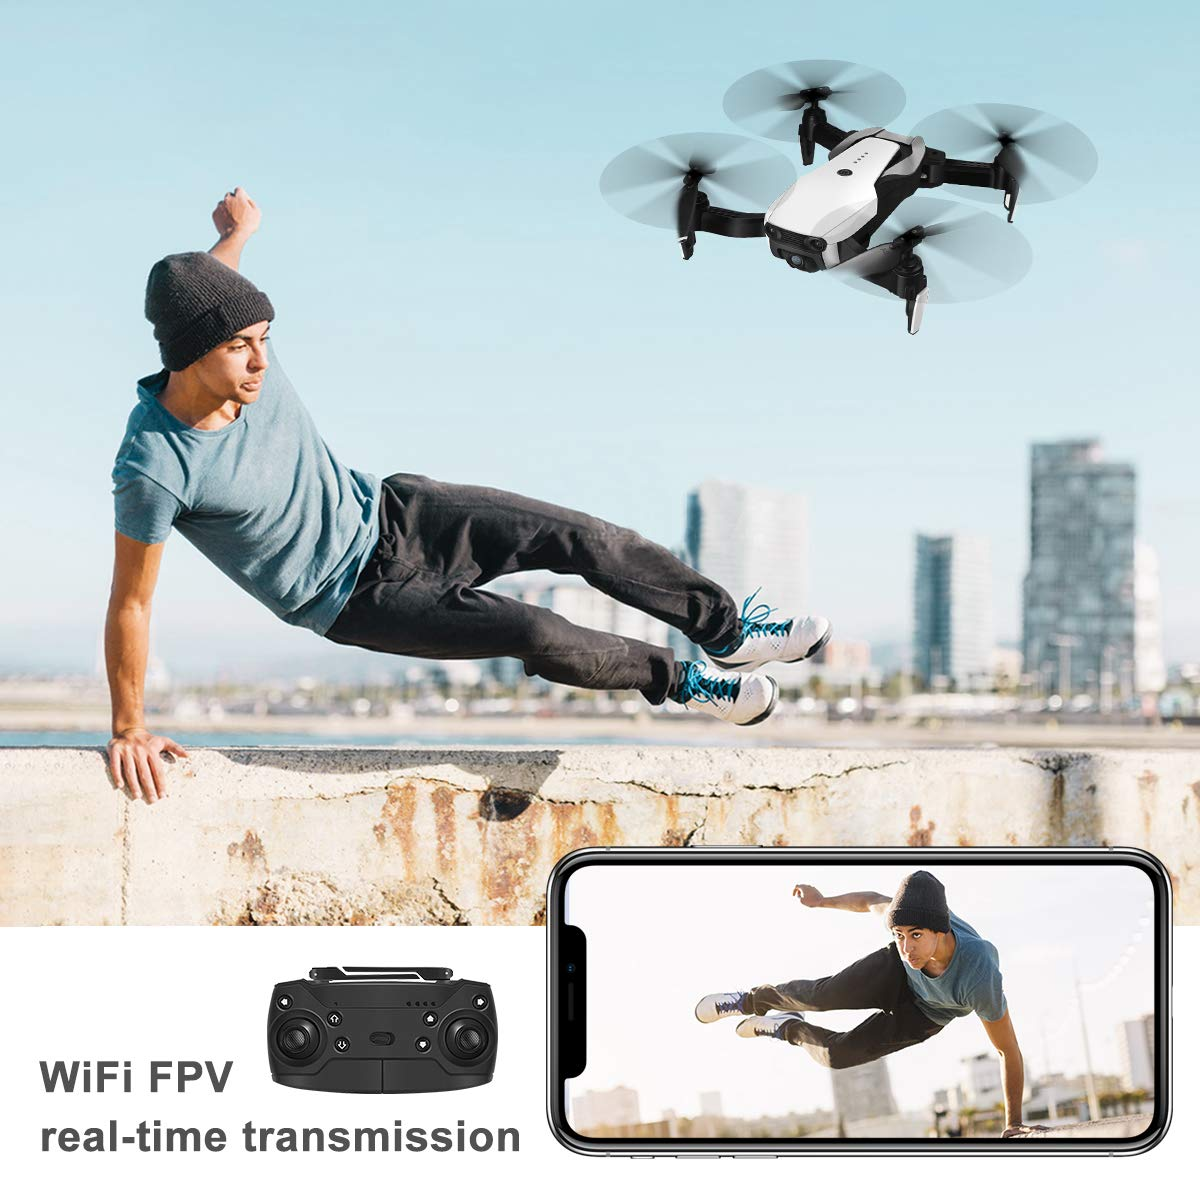 Drones with Camera 1080P for Adults,EACHINE E511 WiFi FPV Live Video Quadcopter with 120° FOV 1080P HD Camera, 17mins Long Flight Time Foldable RC Drone RTF - Altitude Hold, 3D Flip, APP Control by EACHINE (Image #3)